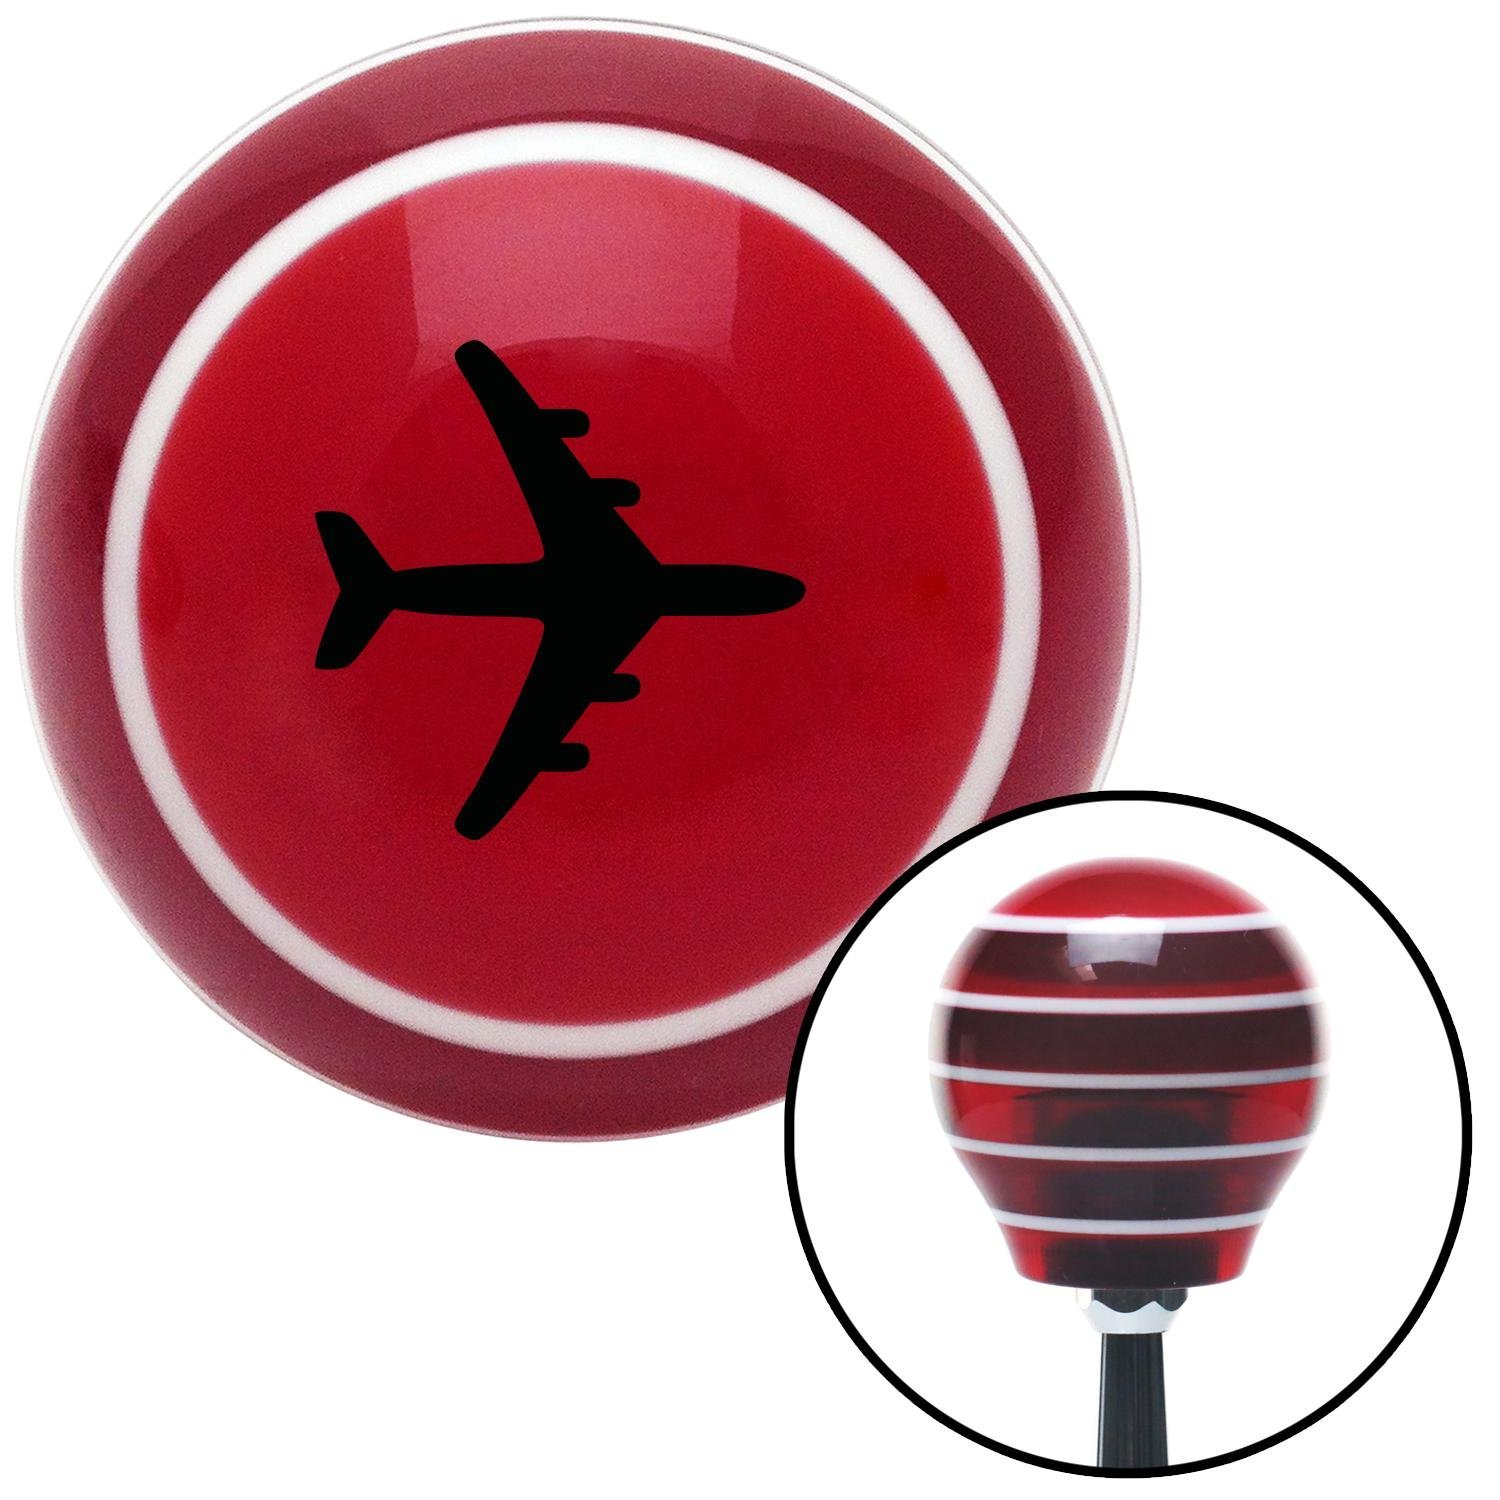 American Shifter 120102 Red Stripe Shift Knob with M16 x 1.5 Insert Black Commercial Airplane